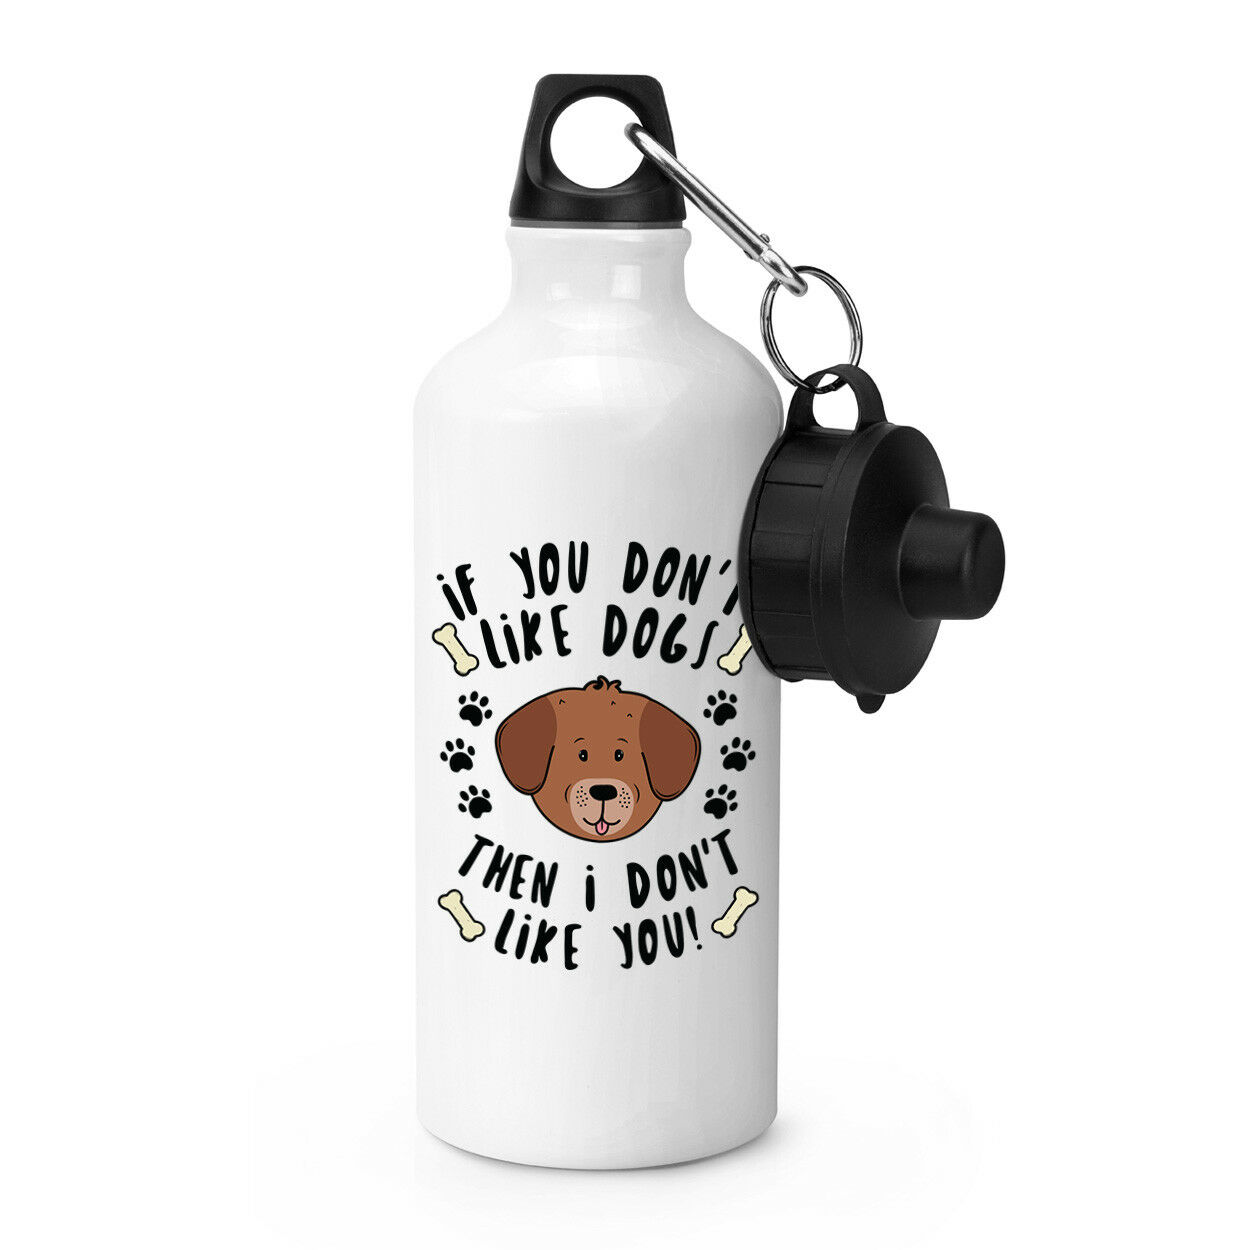 If If If You Don't COMME CHIENS puis I Don't Like You Sports Bouteille Boisson camping c1121c